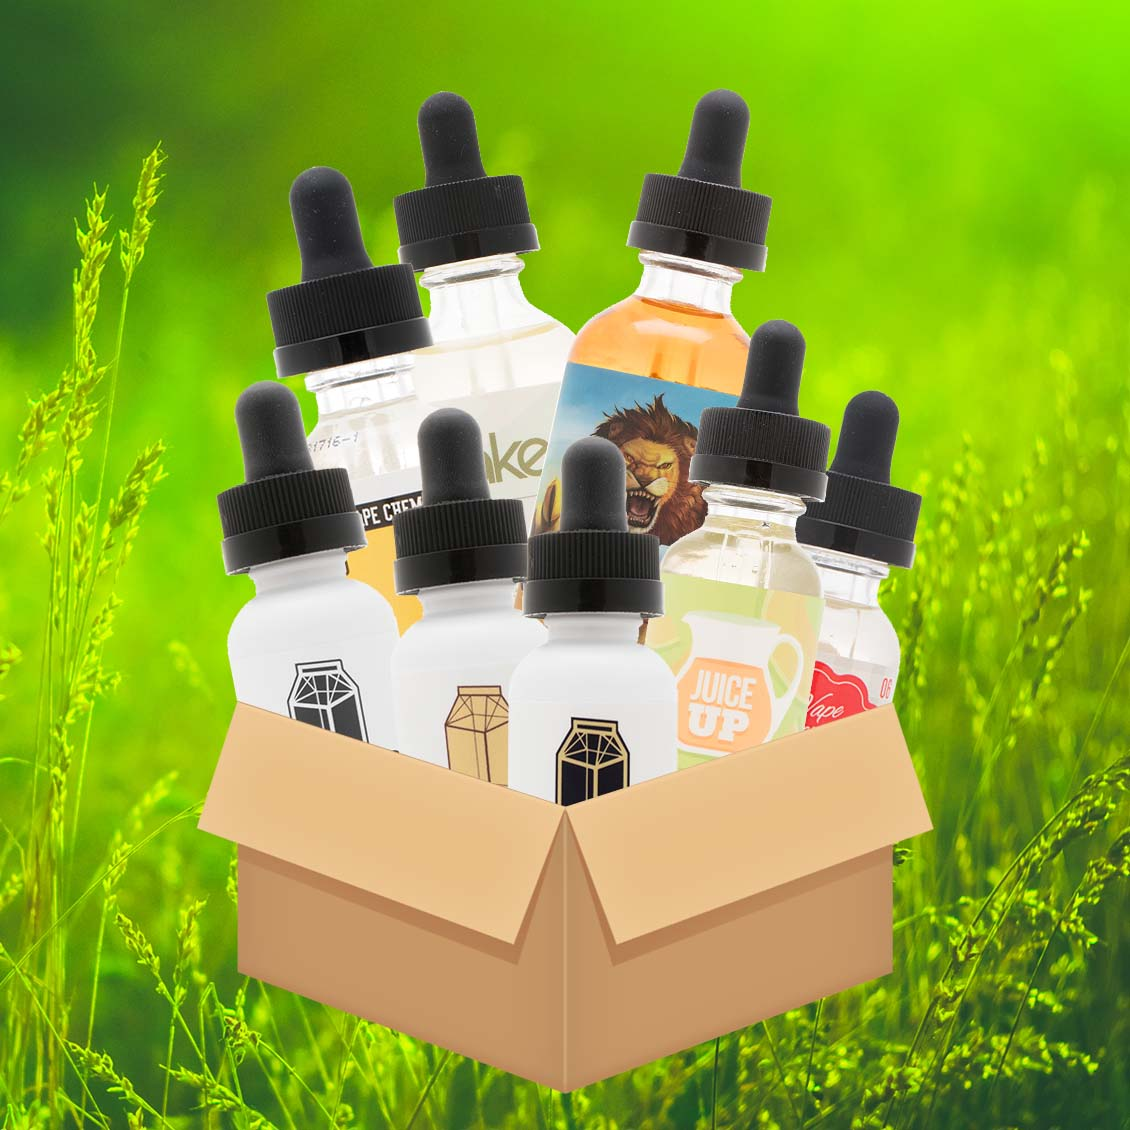 Premium Variety Bundle w/ ANML Unleashed, Milkman, Naked100, and More - 300mL! Photo